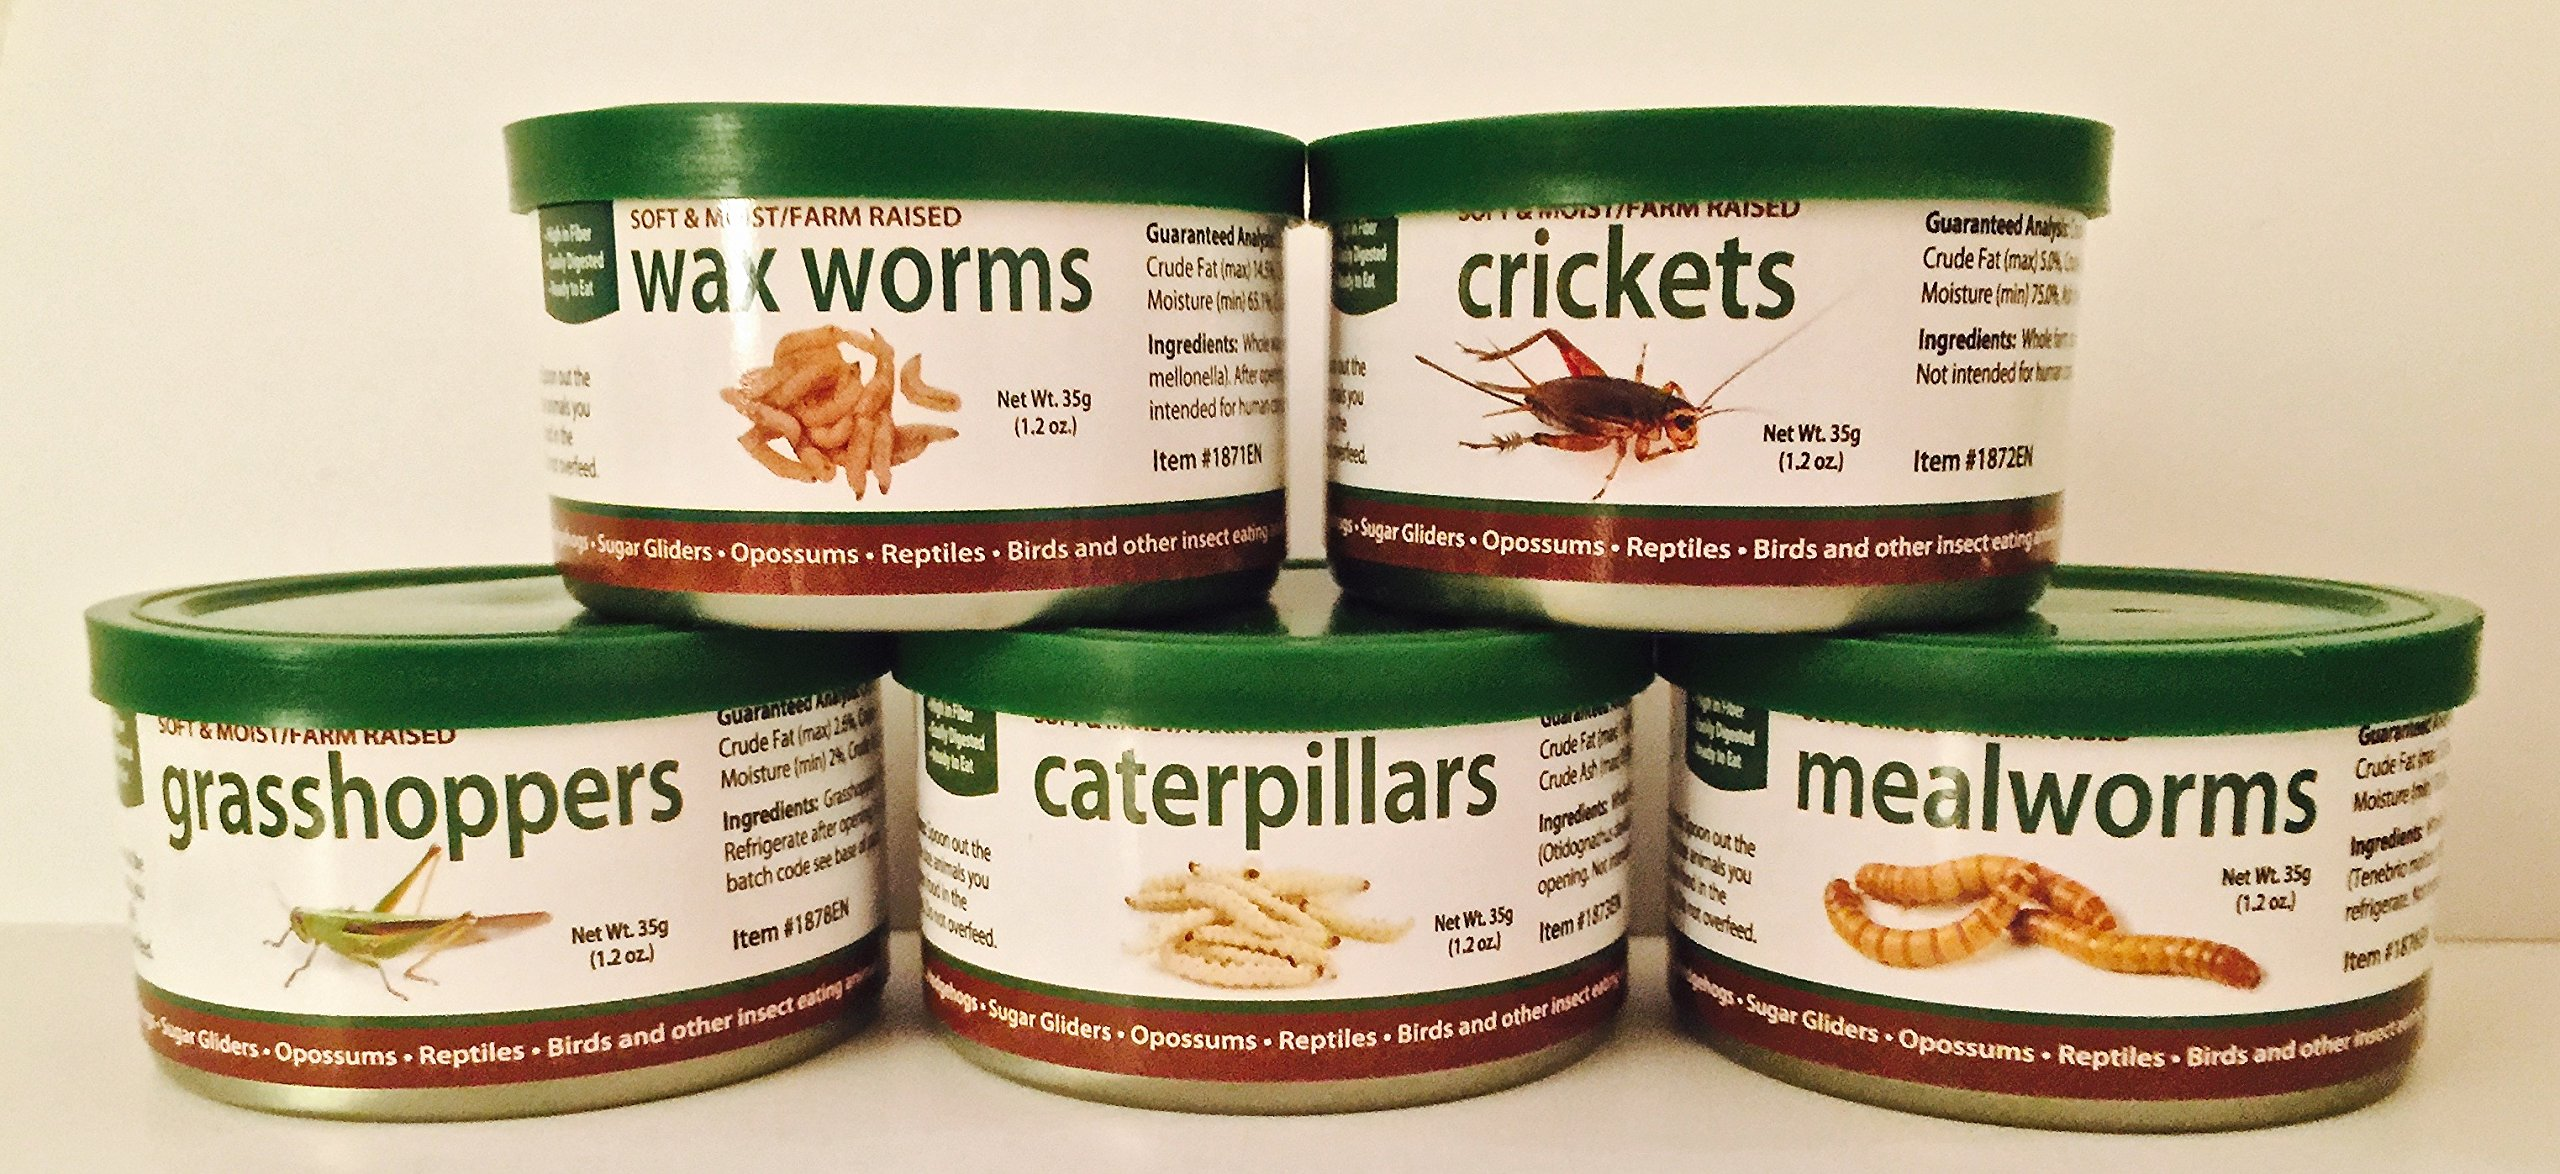 SUGAR GLIDERS USA 5 PACK CANNED INSECTS: CATERPILLARS, MEALWORMS, WAX WORMS, CRICKETS, GRASSHOPPERS